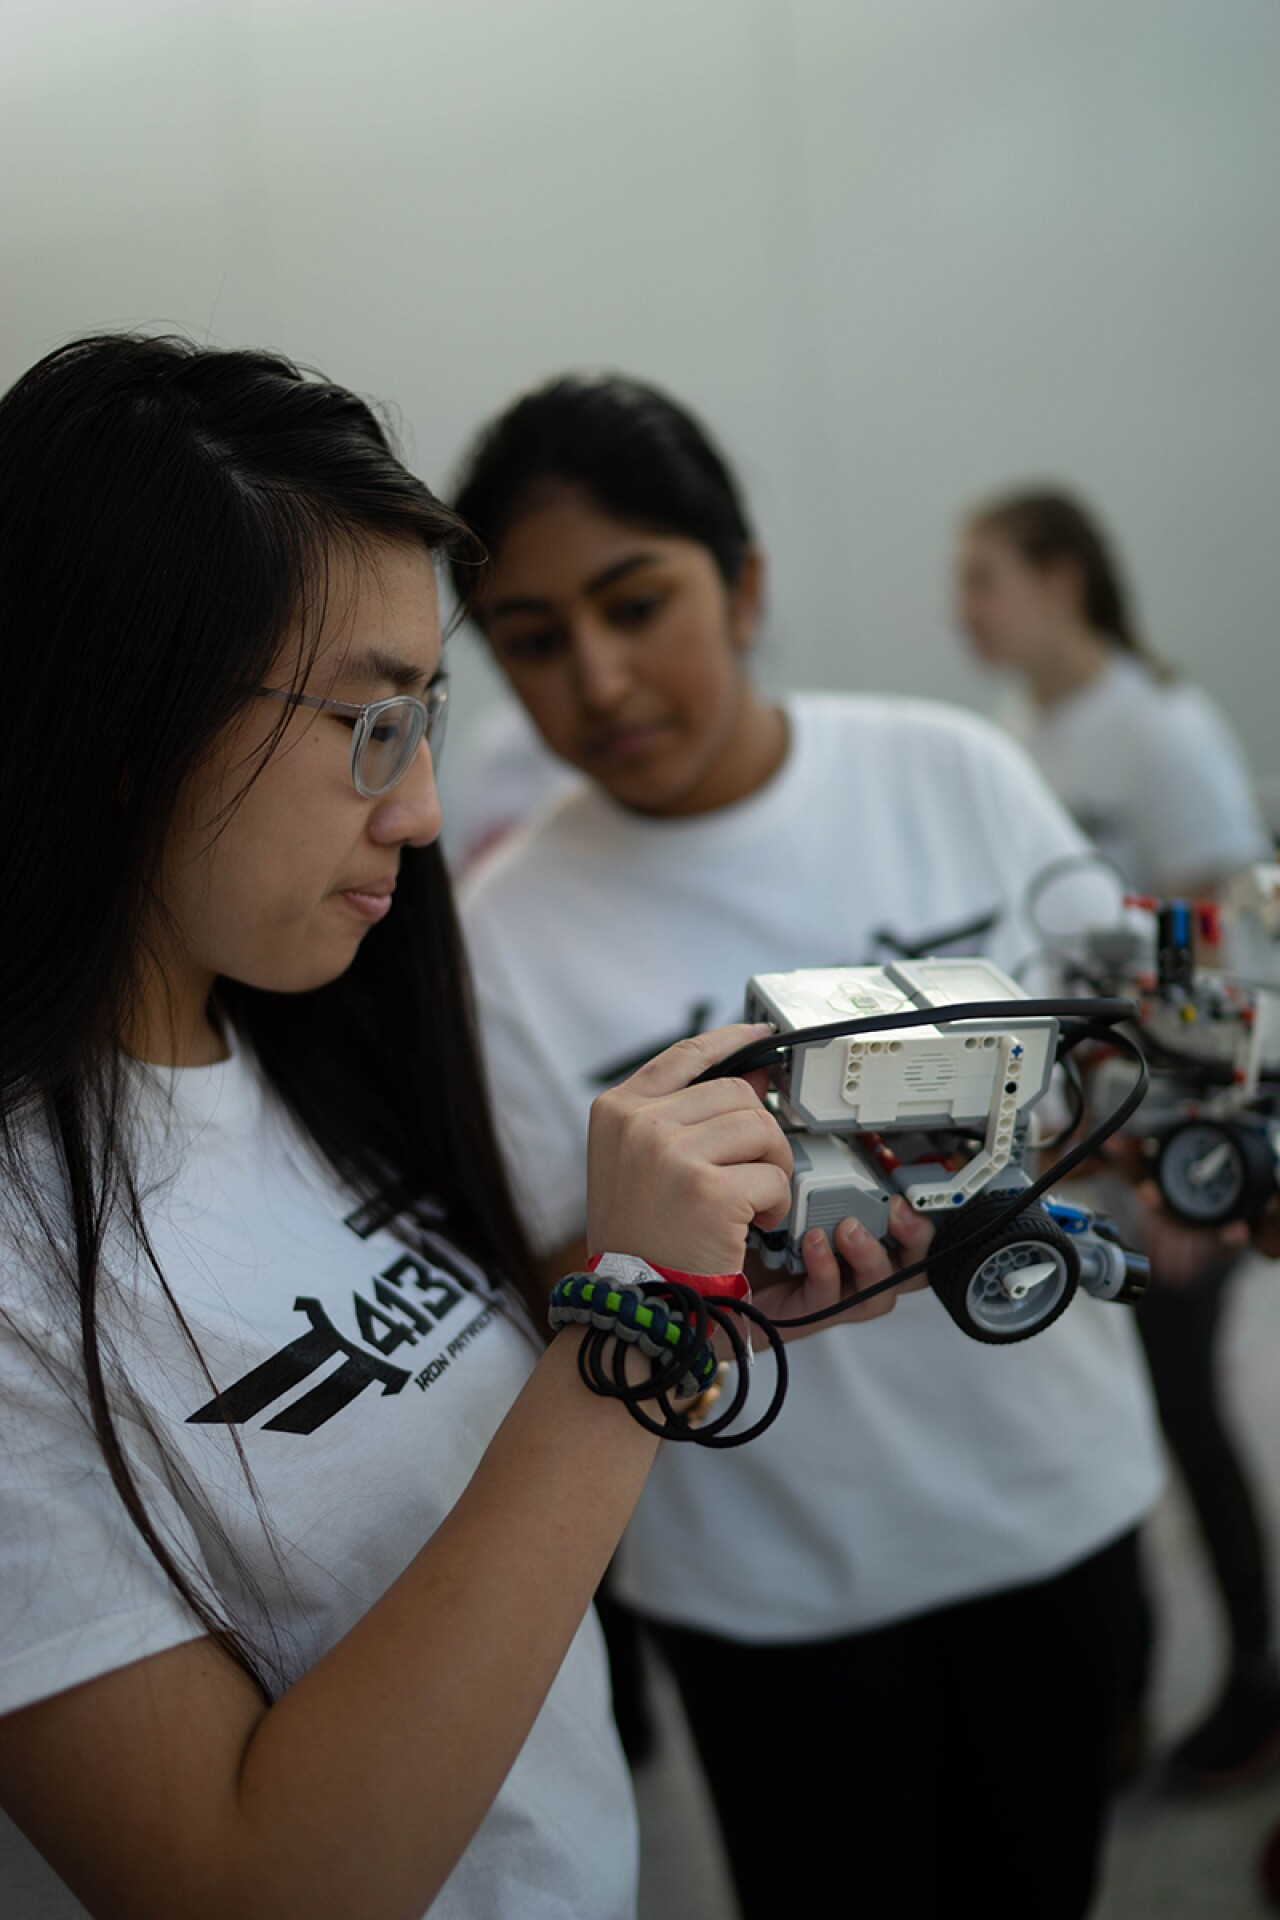 Young lady is tinkering with her robot, an onlooker in the background is watching what she is doing while holding her robot.